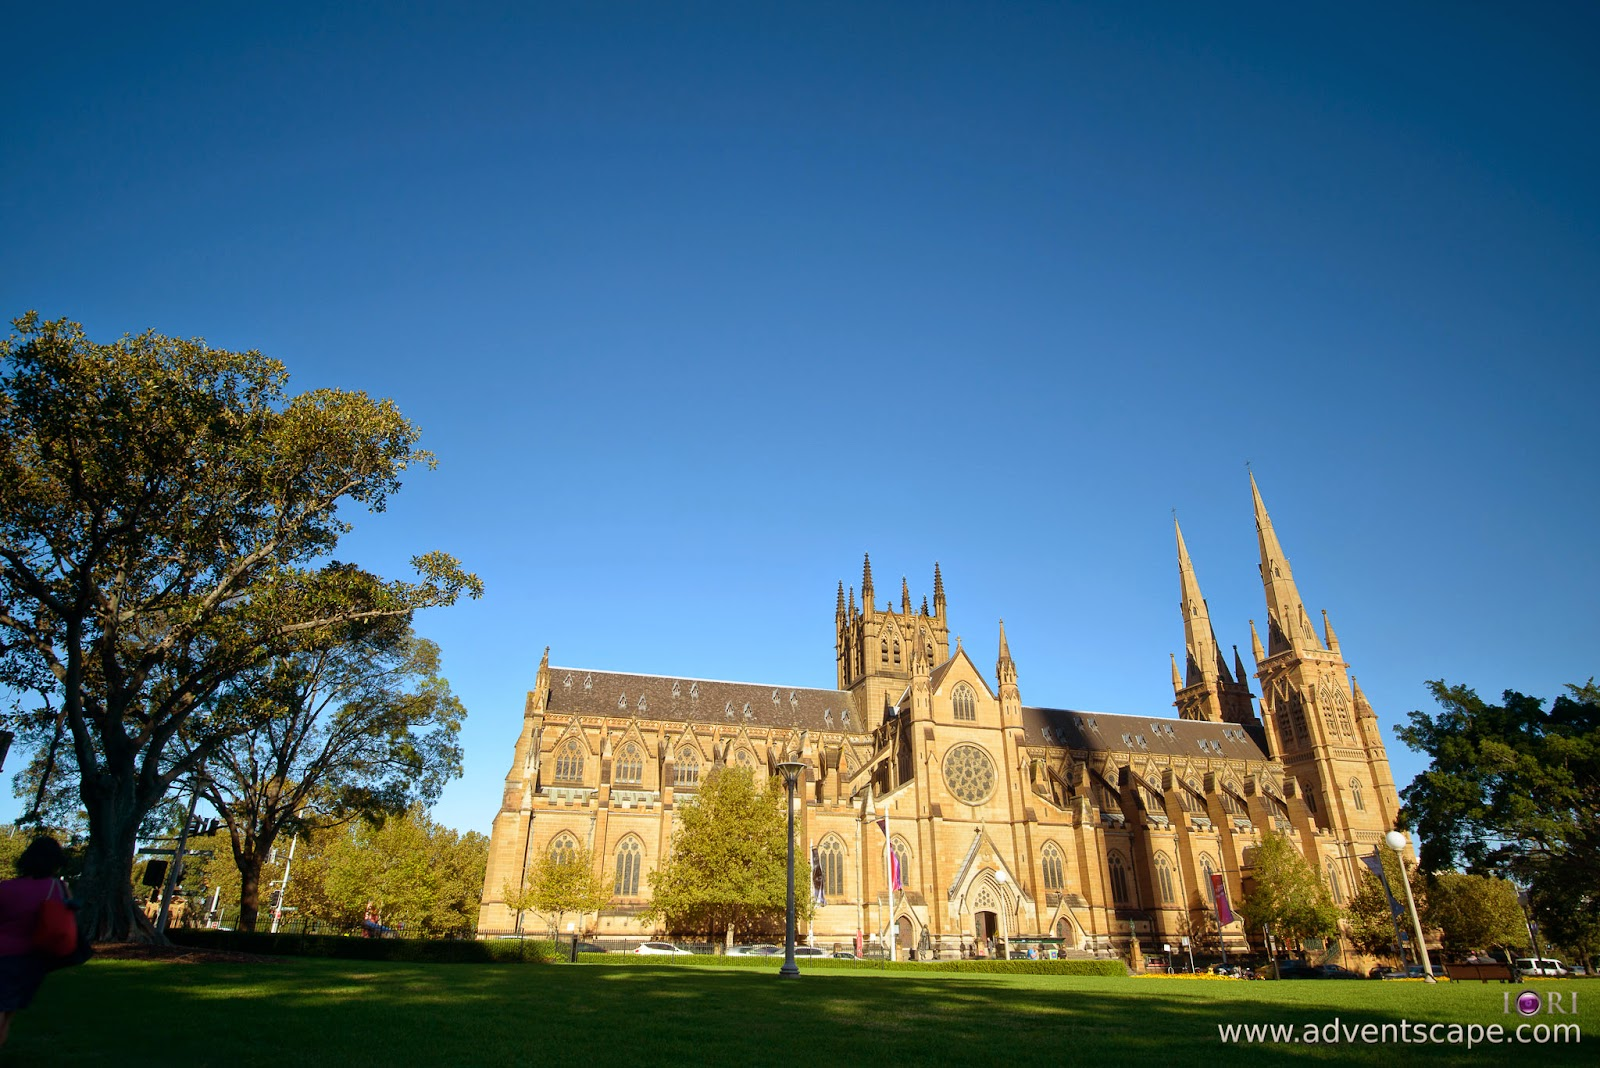 Philip Avellana, Australian Landscape Photographer, NSW, New South Wales, Sydney, Australia, St Mary's Cathedral, church, comparison, review, glass vs resin, filters, Lee Filters, soft ND, ND, neutral density, graduated neutral density, GND, grad nd, resin, 0.9, 3 stops